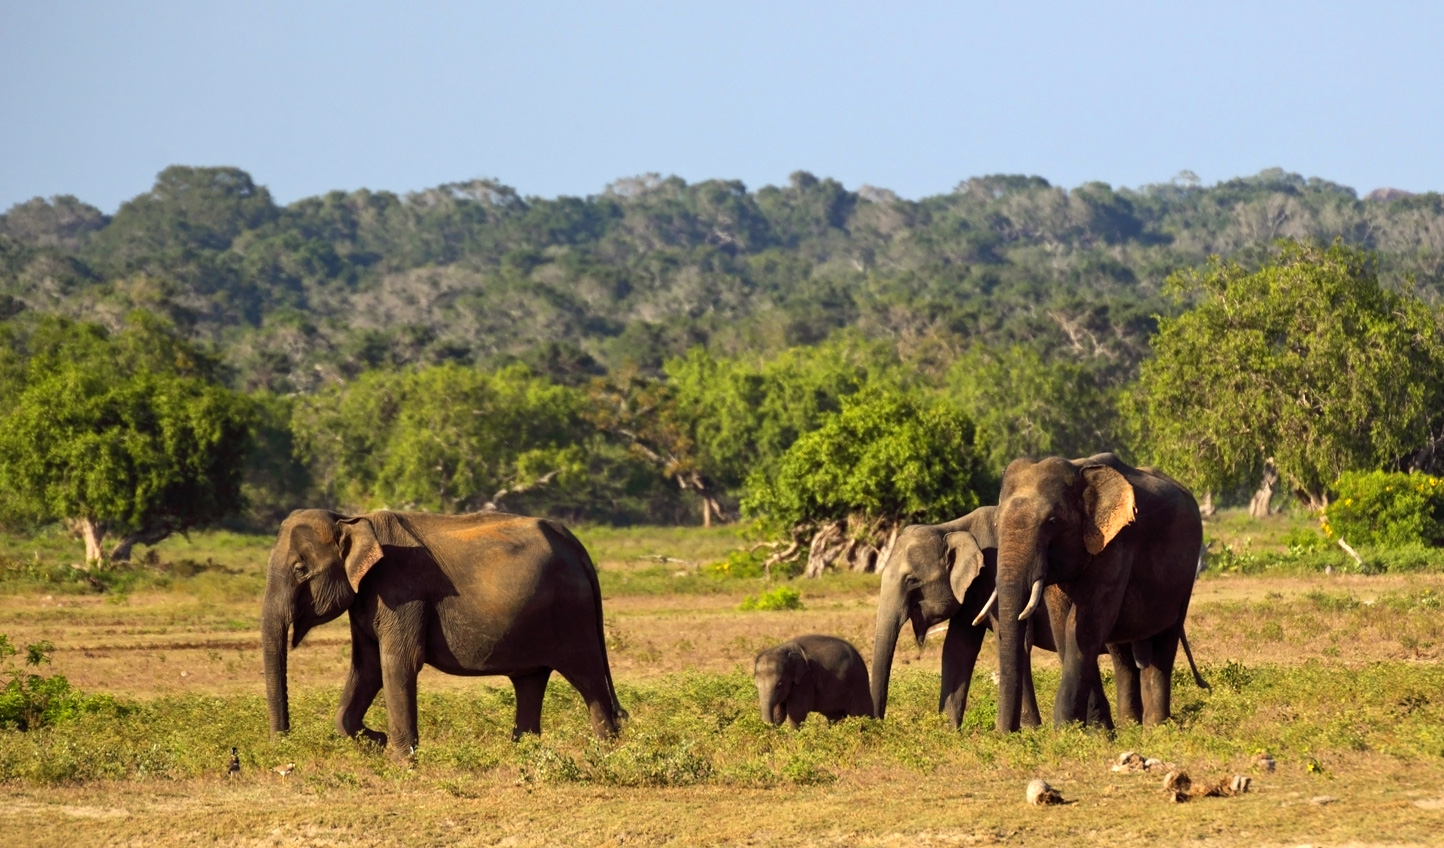 Follow in the footsteps of elephant herds